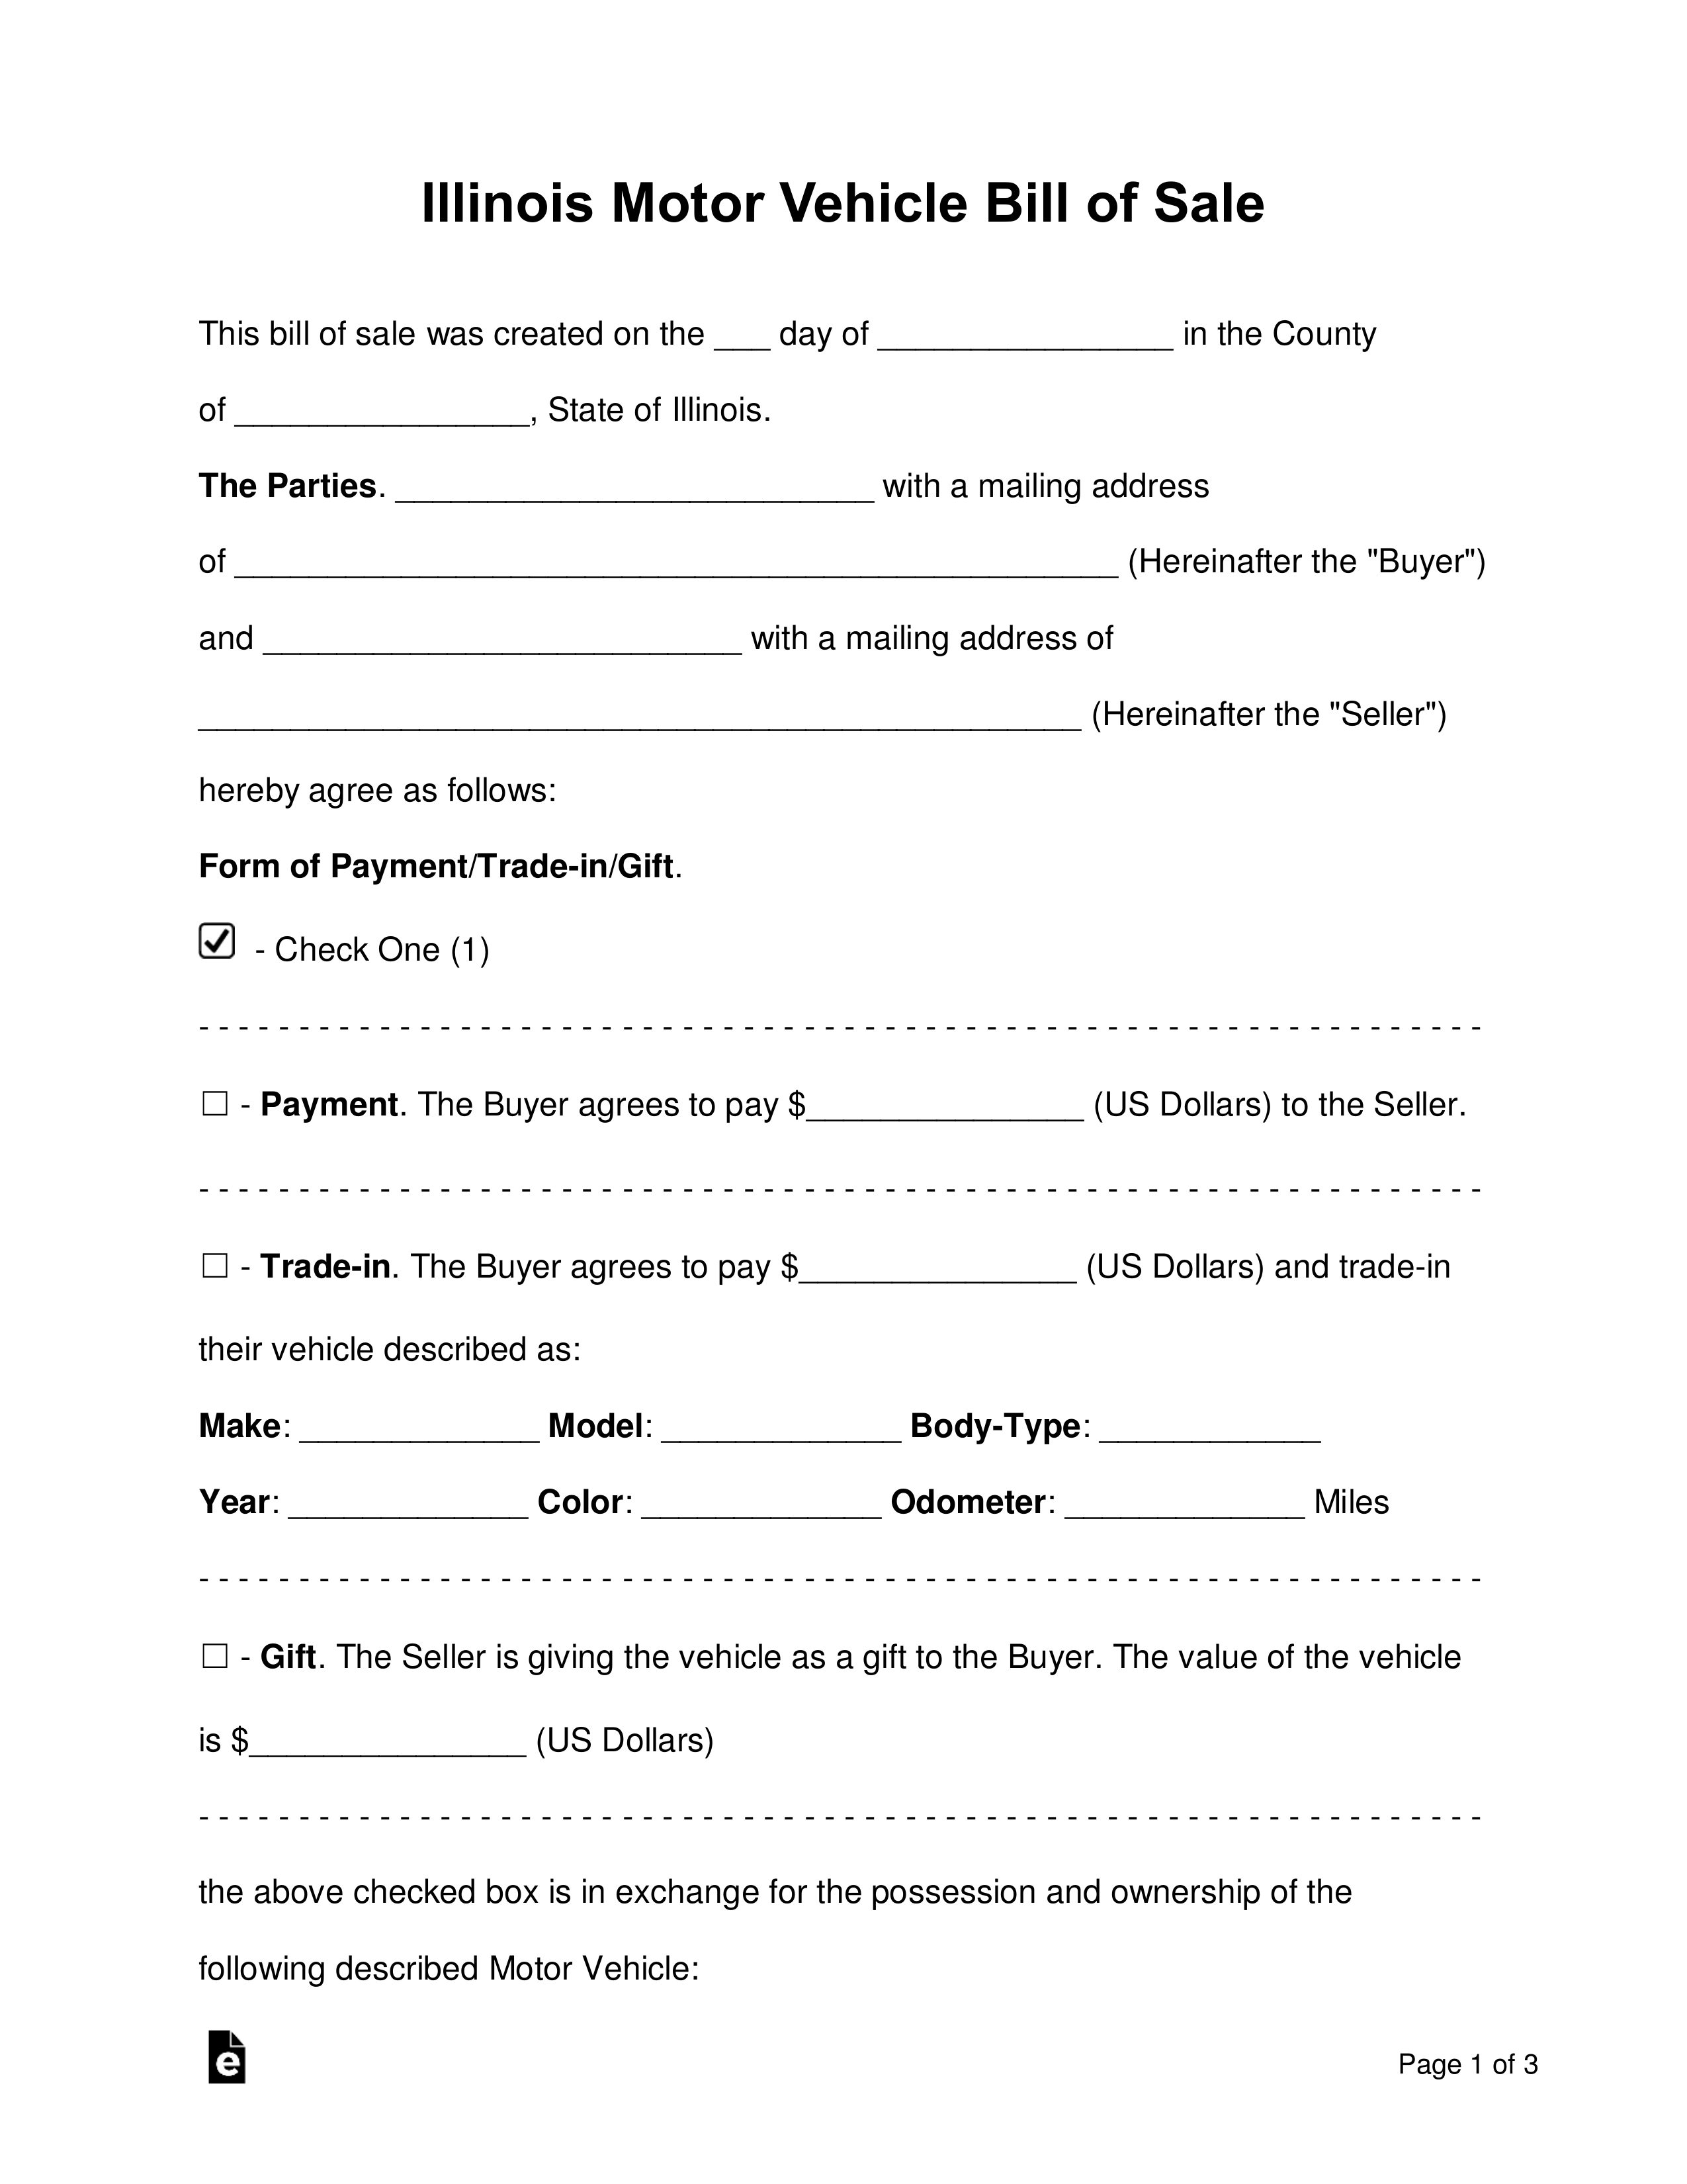 Free Illinois Bill Of Sale Forms - Word   Pdf   Eforms